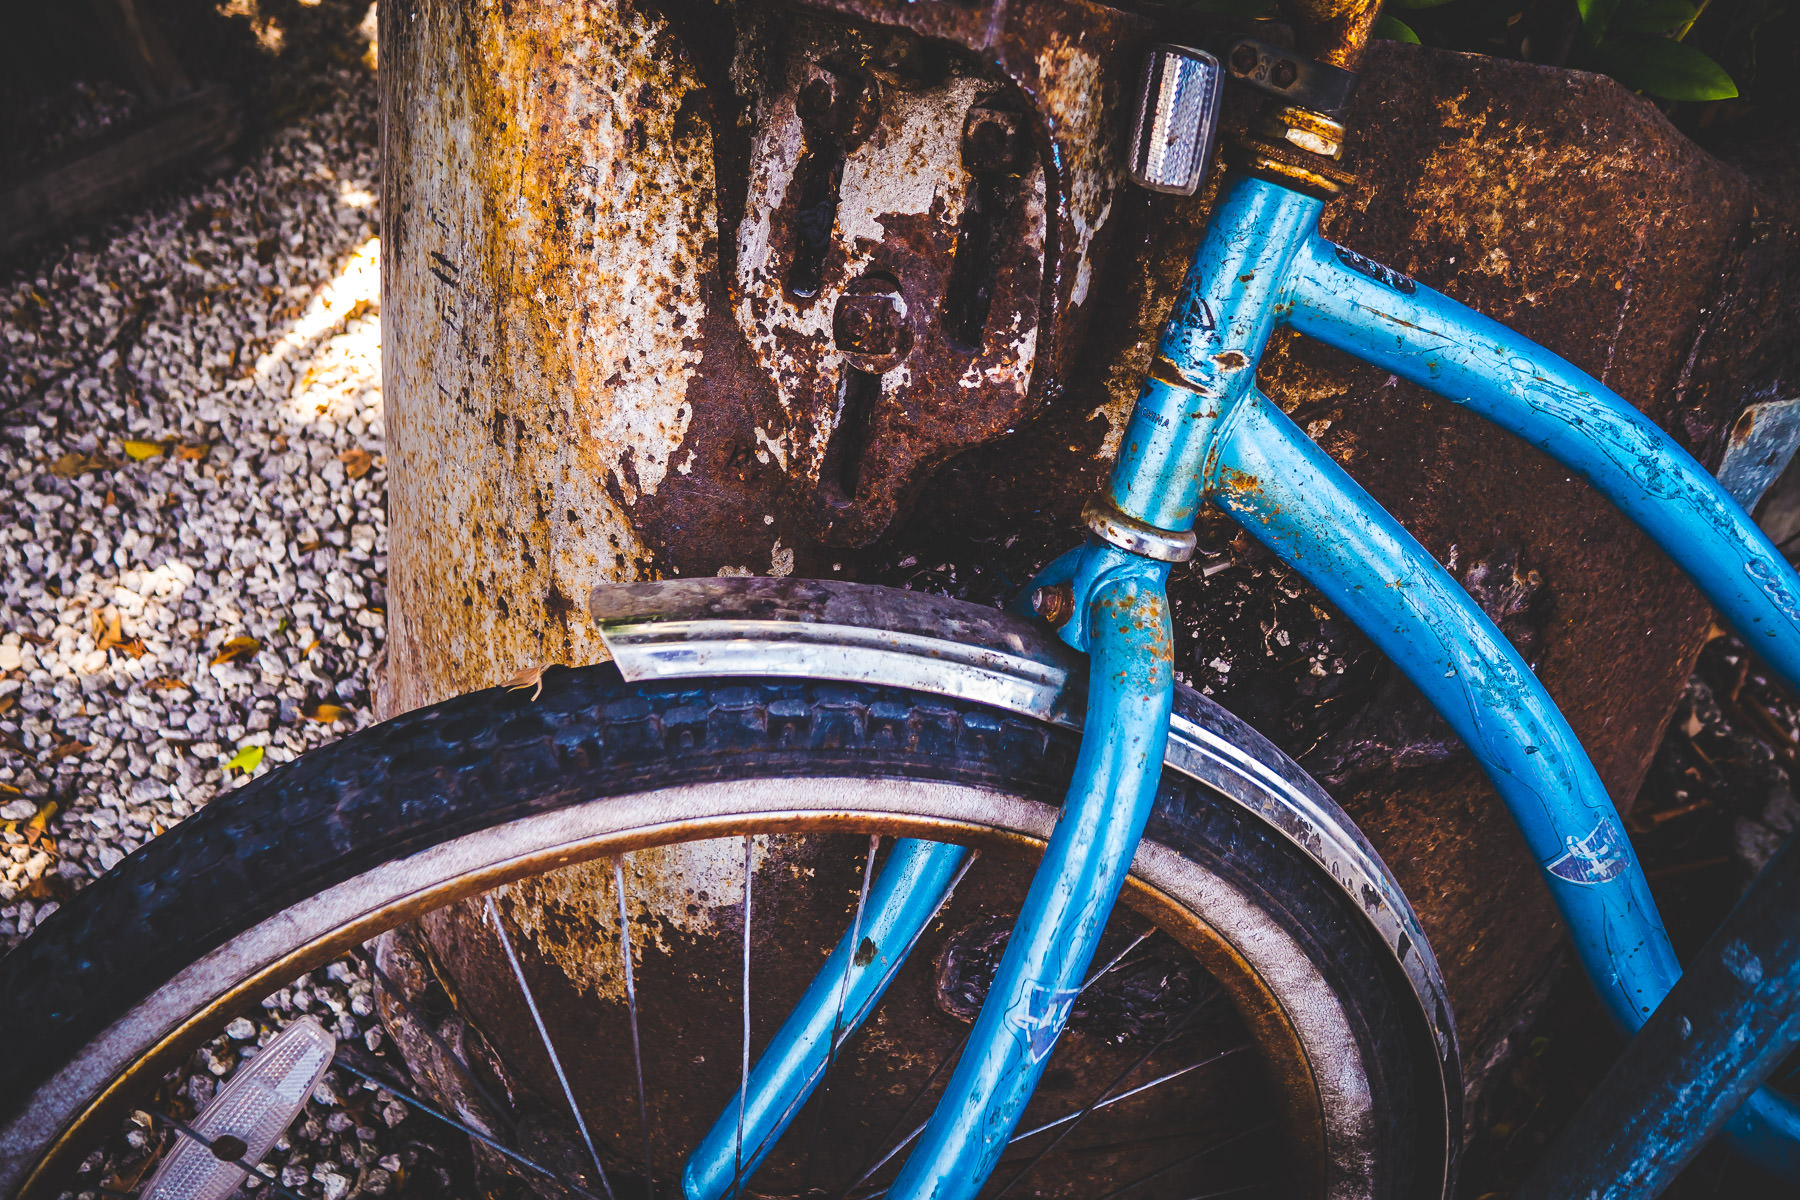 A blue bicycle rusts in the Key West, Florida, humidity.